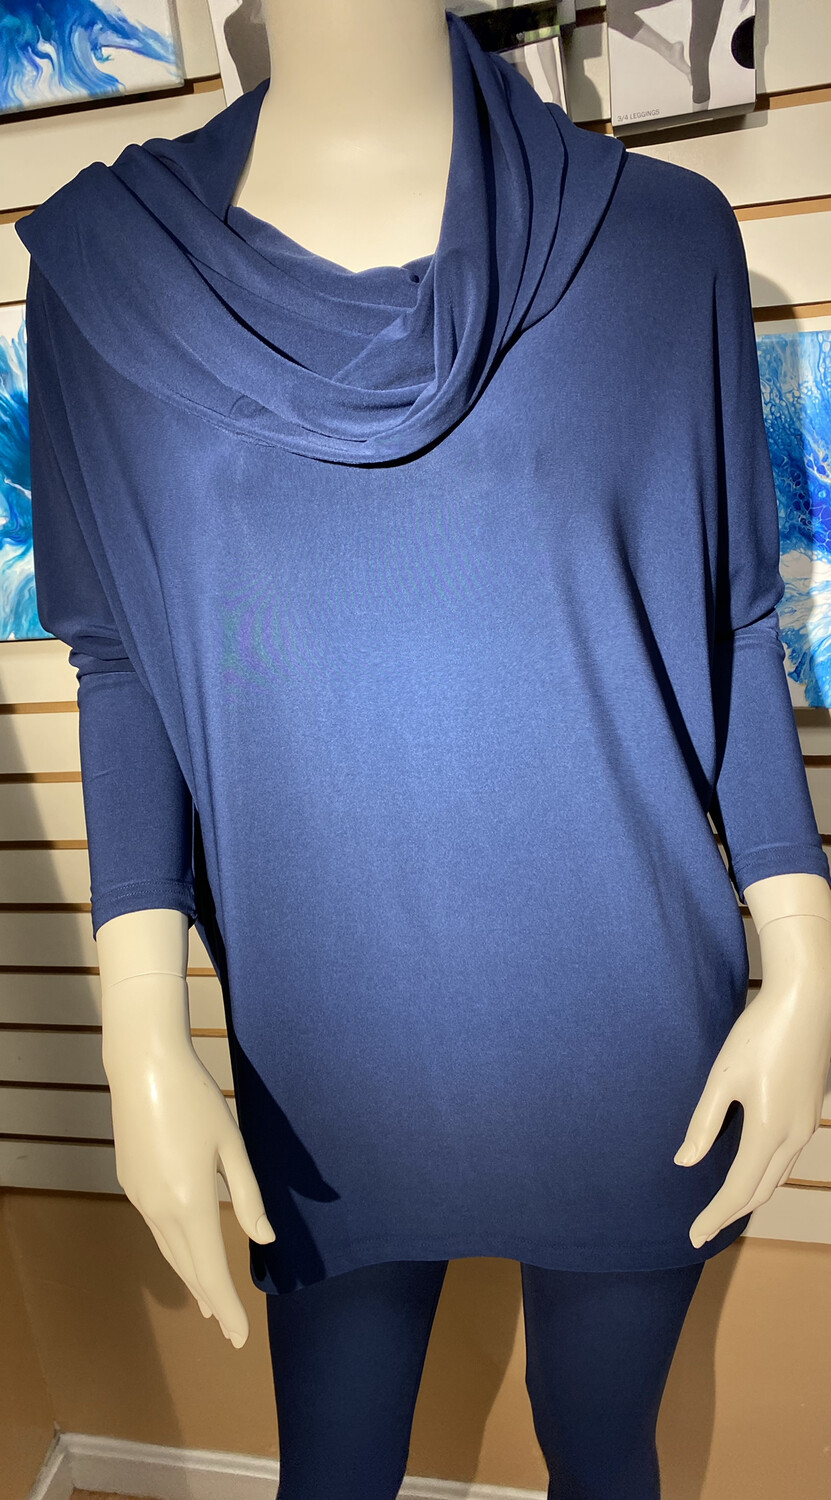 Sympli Wander Tunic New Denim Size 4 This Top Is So Luxurious.